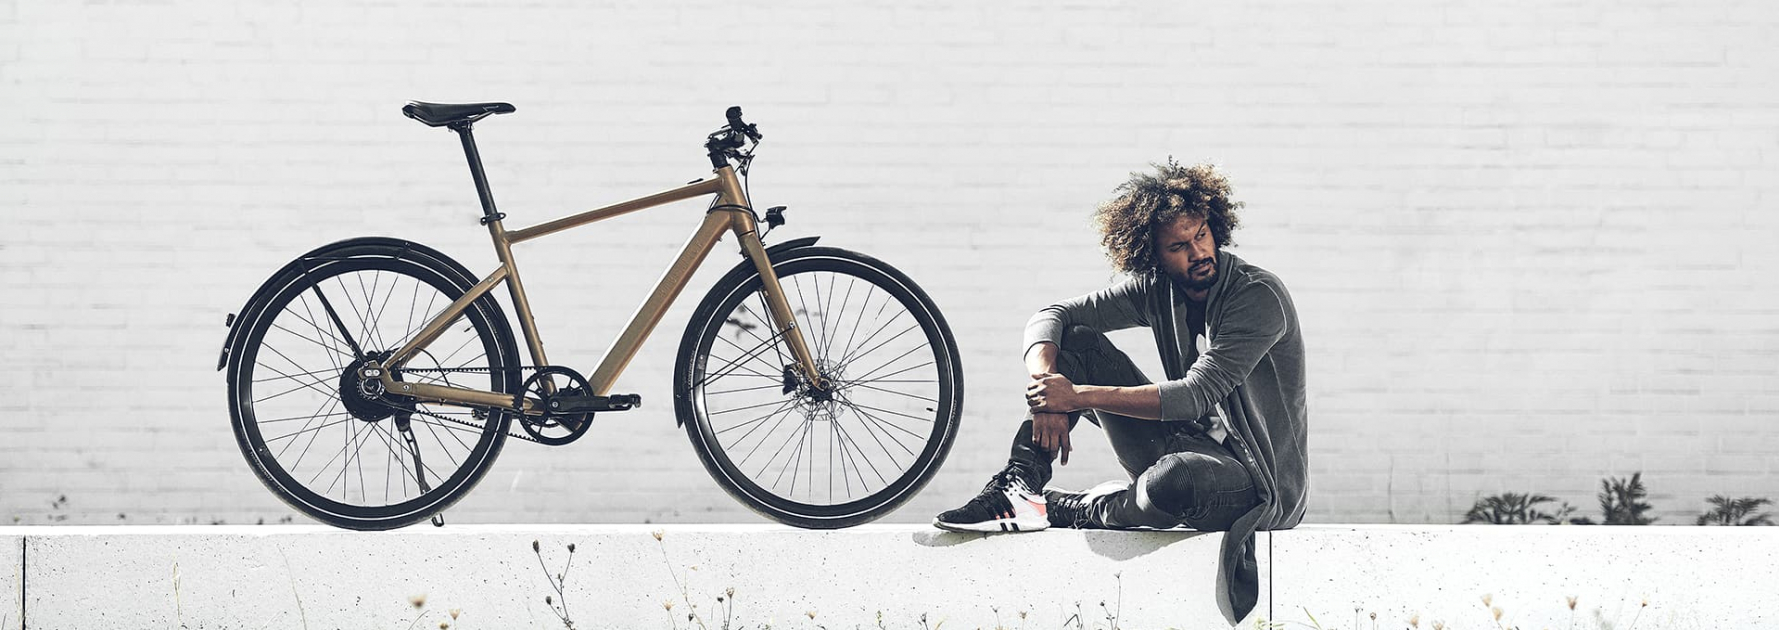 Bike lifestyle – Rabeneick